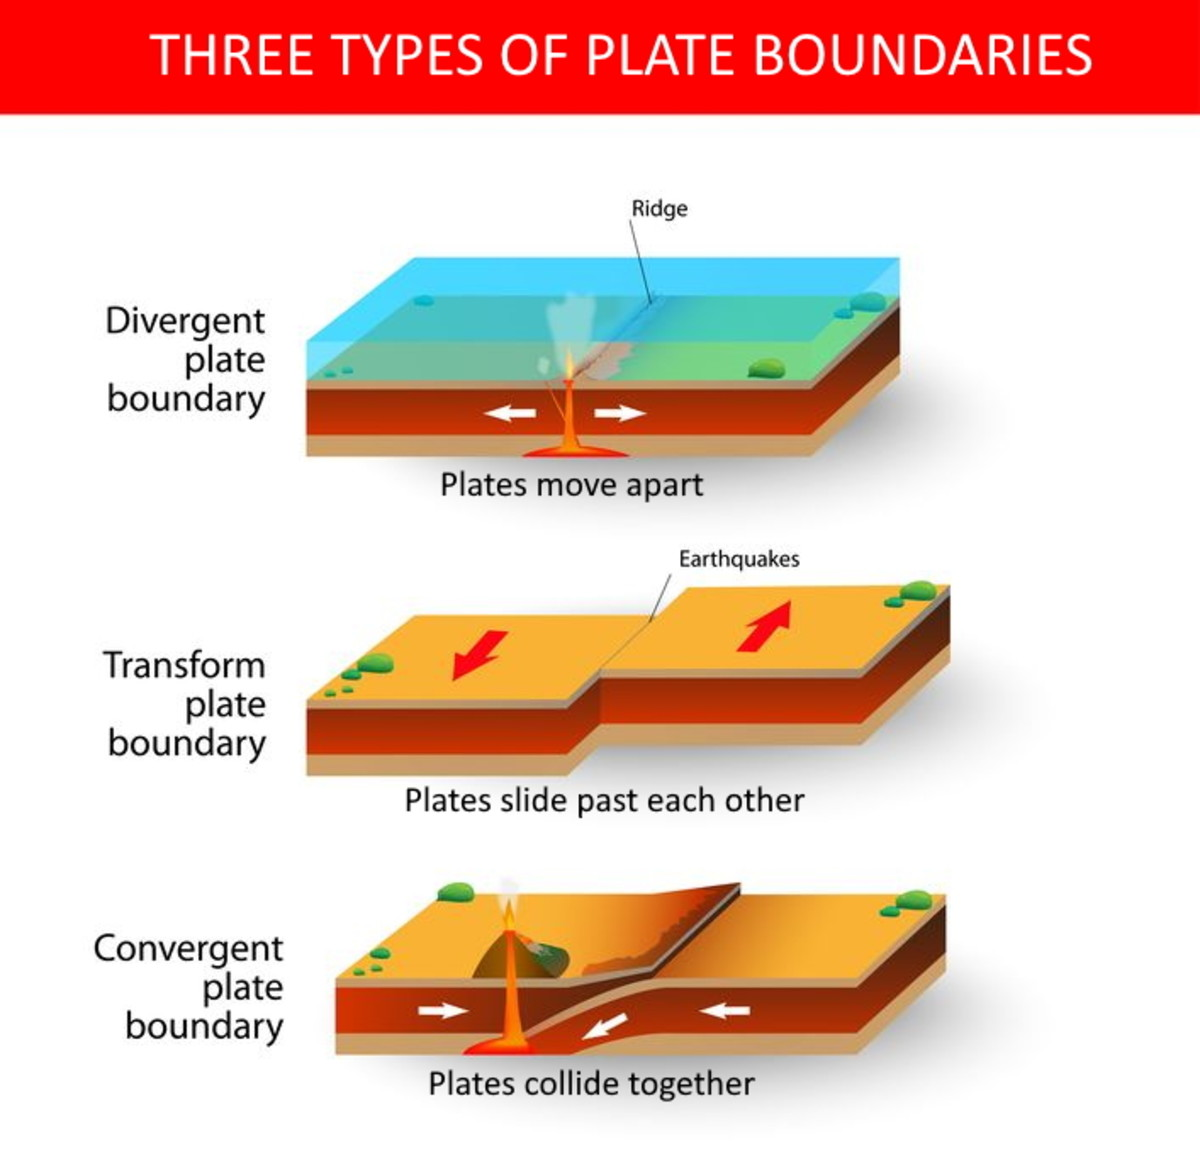 Divergent boundaries, convergent boundaries, and transform boundaries are the three types of plate boundaries.